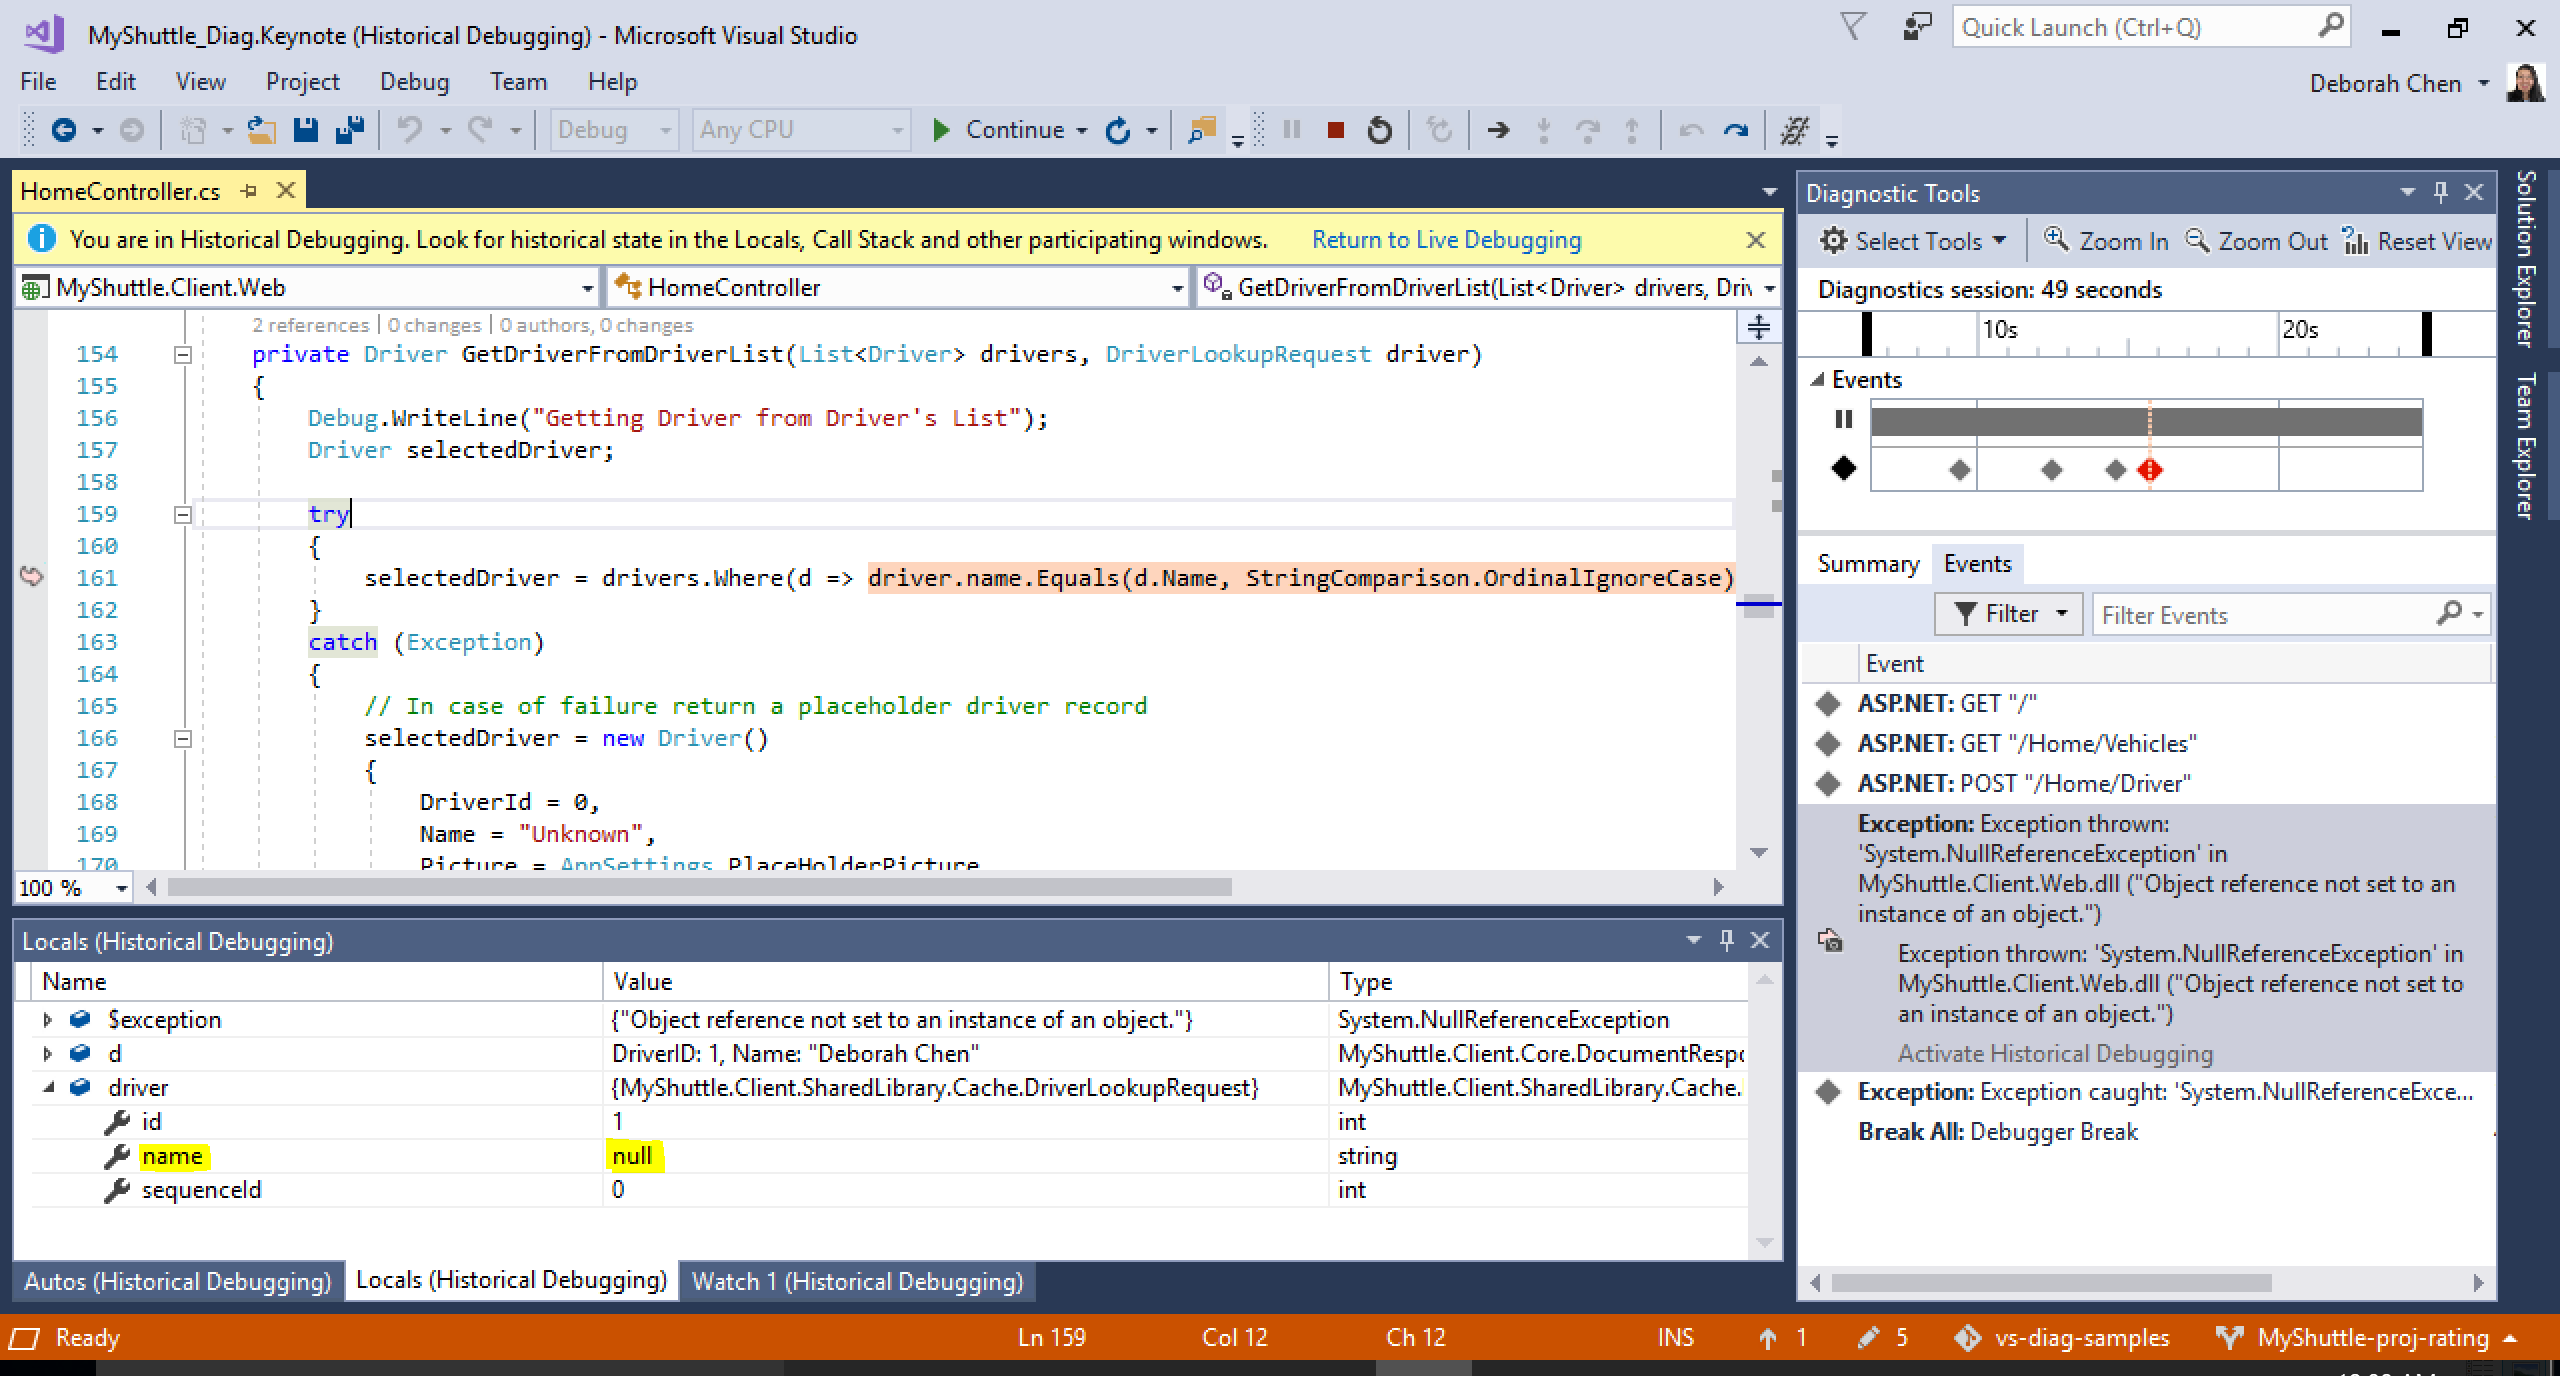 Visual Studio is in historical debugging mode